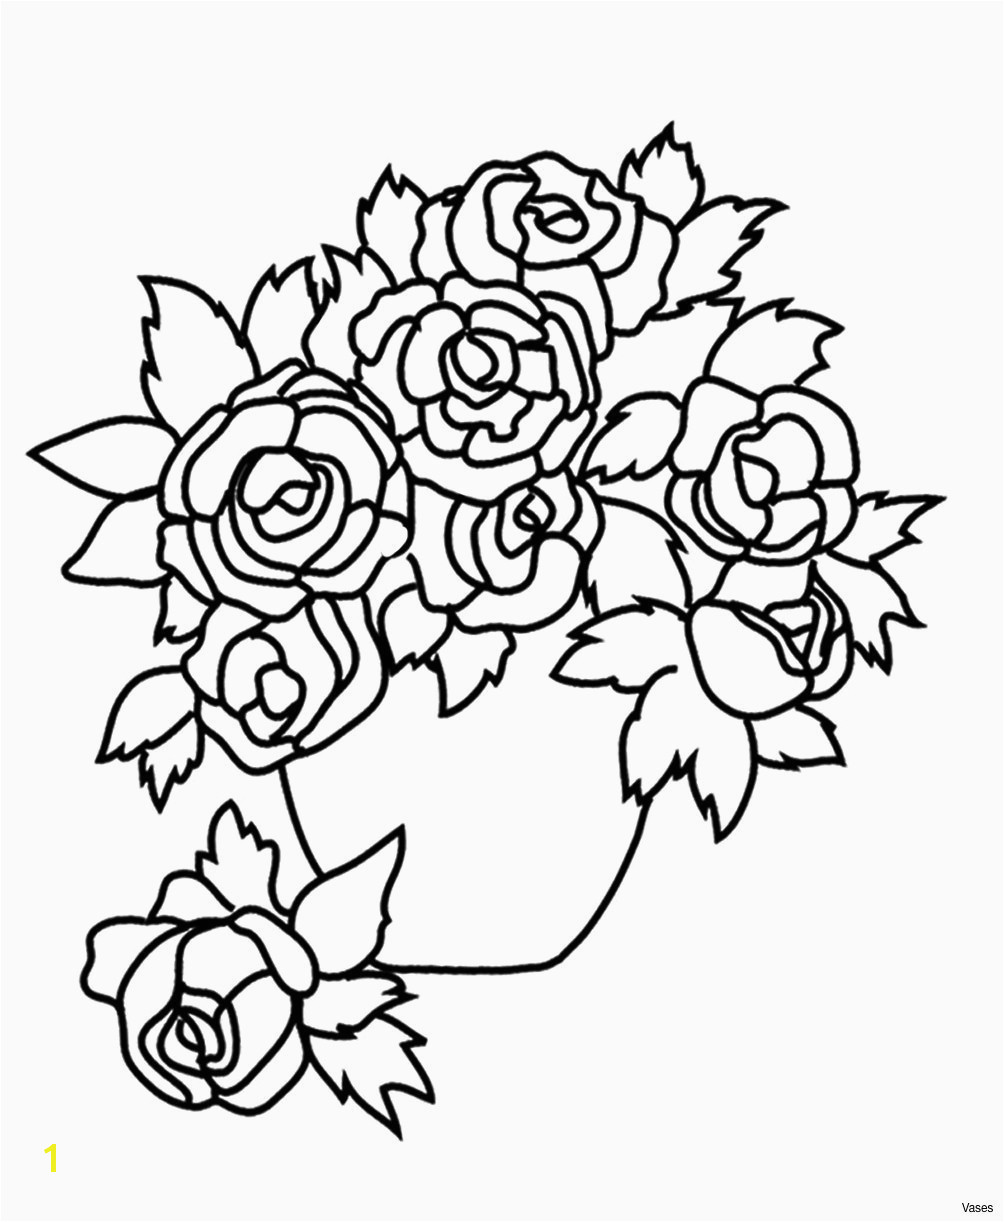 Printable Coloring Pages Flowers and butterflies Design Coloring Pages Beautiful Vases Flowers In Vase